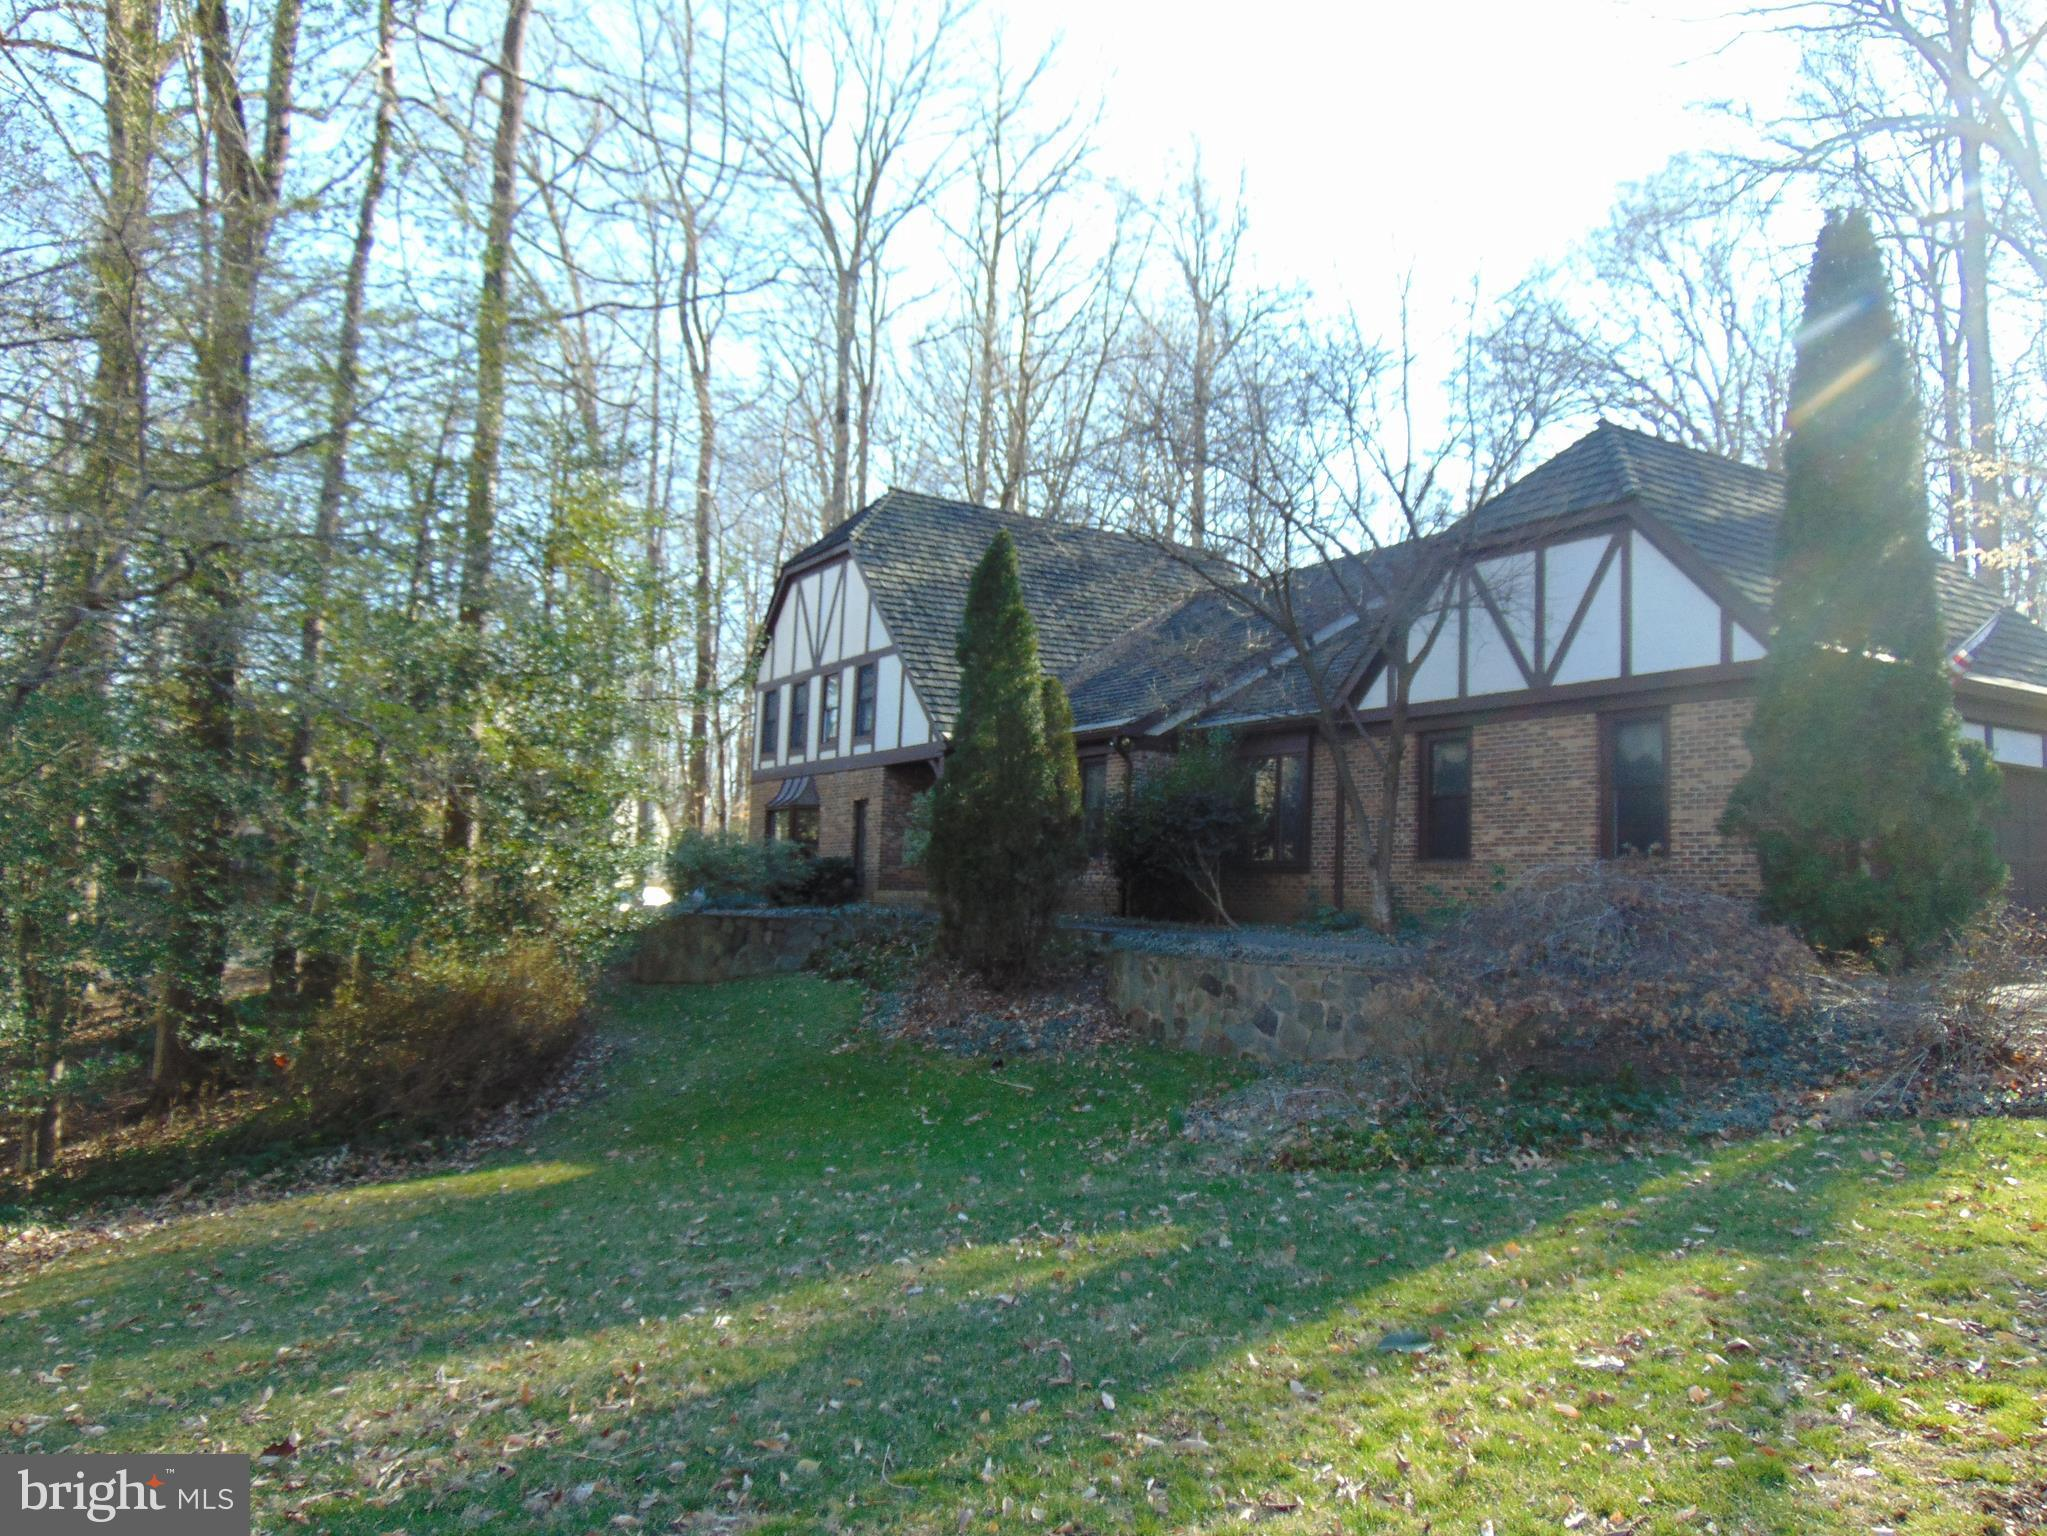 **** APPOINTMENT ONLY TENANT**** TERRIFIC FOUR BEDROOM, TUDOR STYLE HOME IN THE ROBINSON SCHOOL DISTRICT.  THE MANY FEATURES INCLUDE:  SPACIOUS OPEN FLOOR PLAN,  GOURMET KITCHEN WITH CHERRY CABINETS AND SS APPLIANCES, HUGE MASTER BEDROOM AND BATH, FIRST FLOOR LAUNDRY AND MUD ROOM, FULLY FINISHED BASEMENT,  PRIVATE LAND IN A CULDESAC,  ALL CLOSE TO PUBLIC TRANSPORTATION AND AMENITIES.